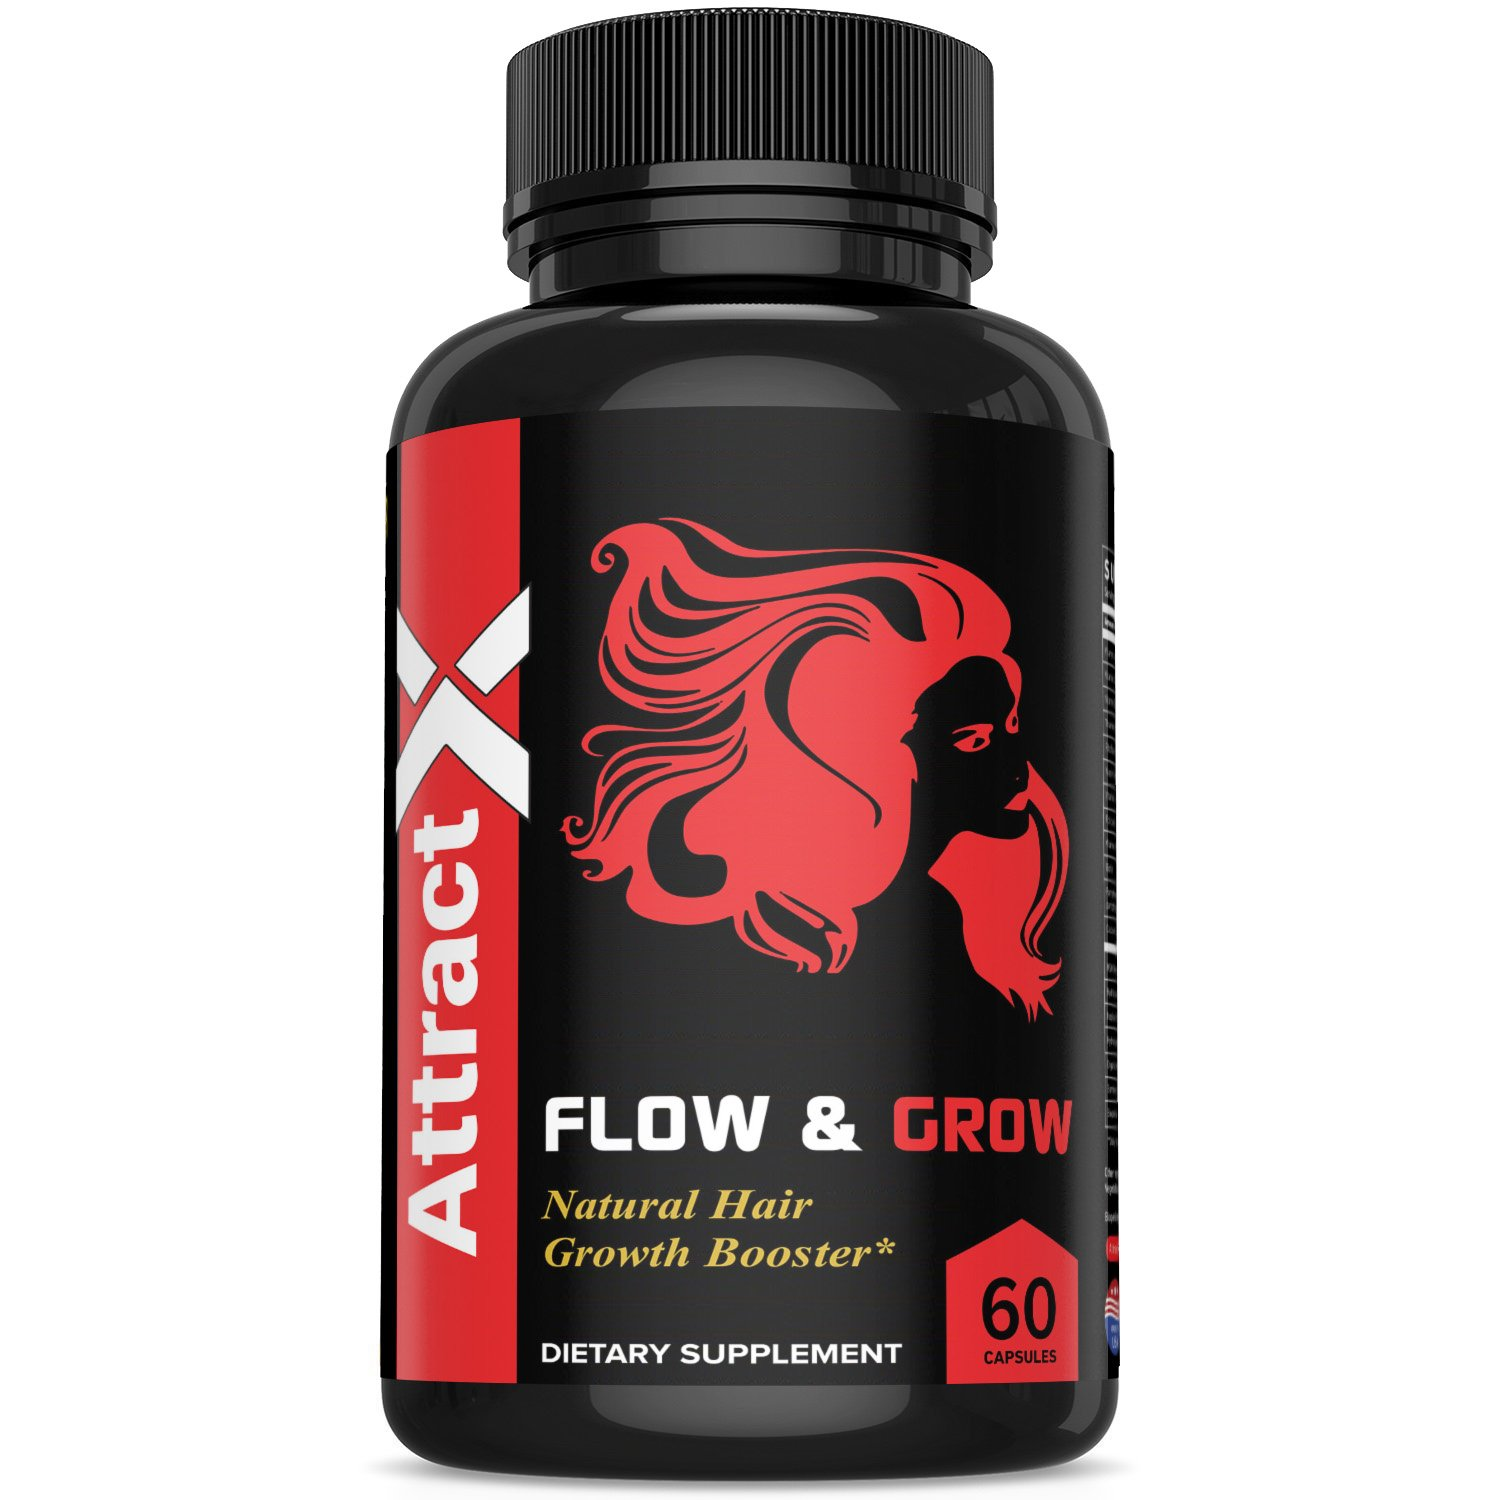 Flow and Grow - Hair Growth Supplement - for Healthy, Fast Growing Hair - Scientifically Formulated with Biotin, Vitamin D, Vitamin C, Bamboo & More! - Nourishes All Hair Types - Veggie Capsules